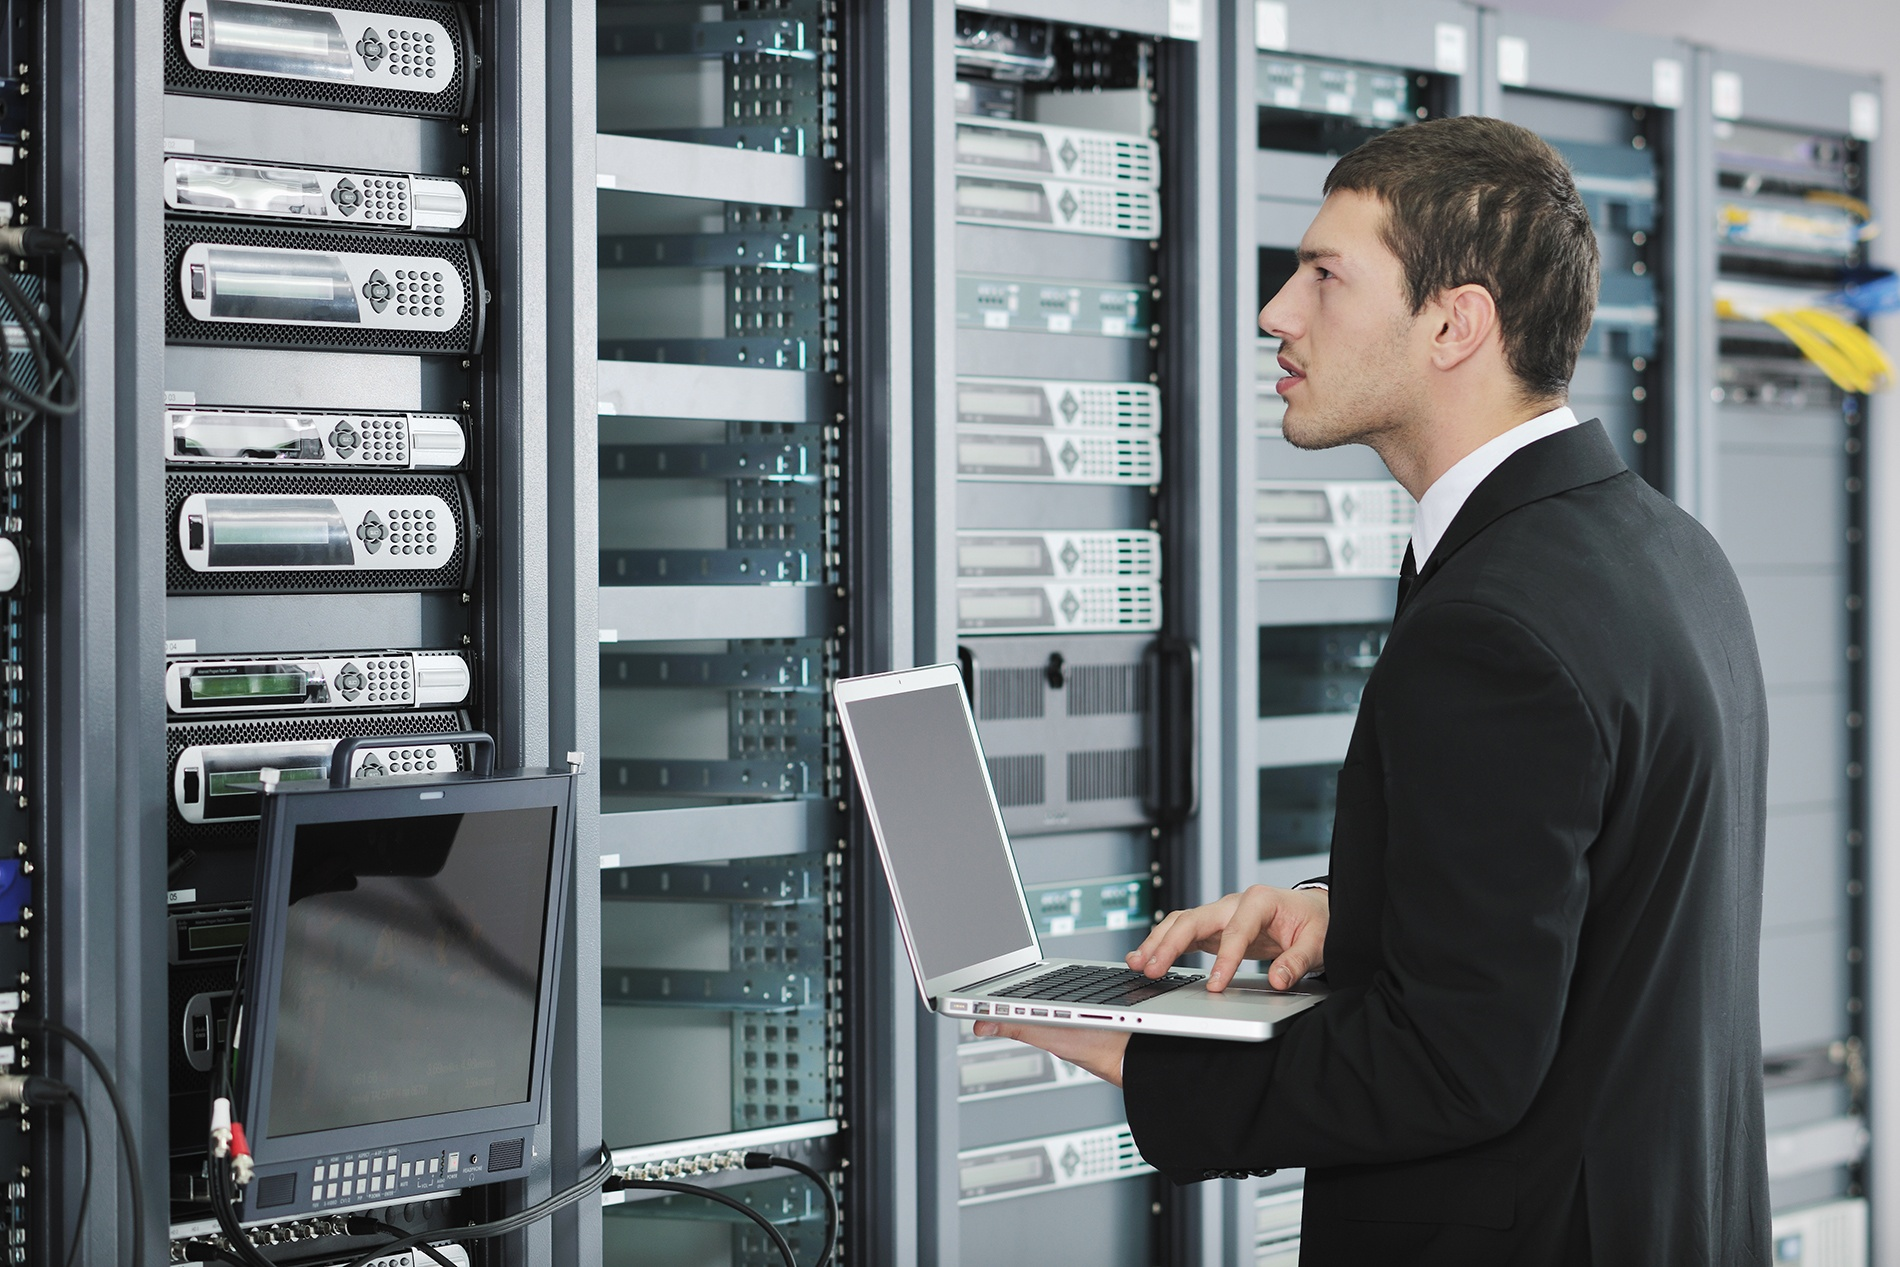 Avast for Business security